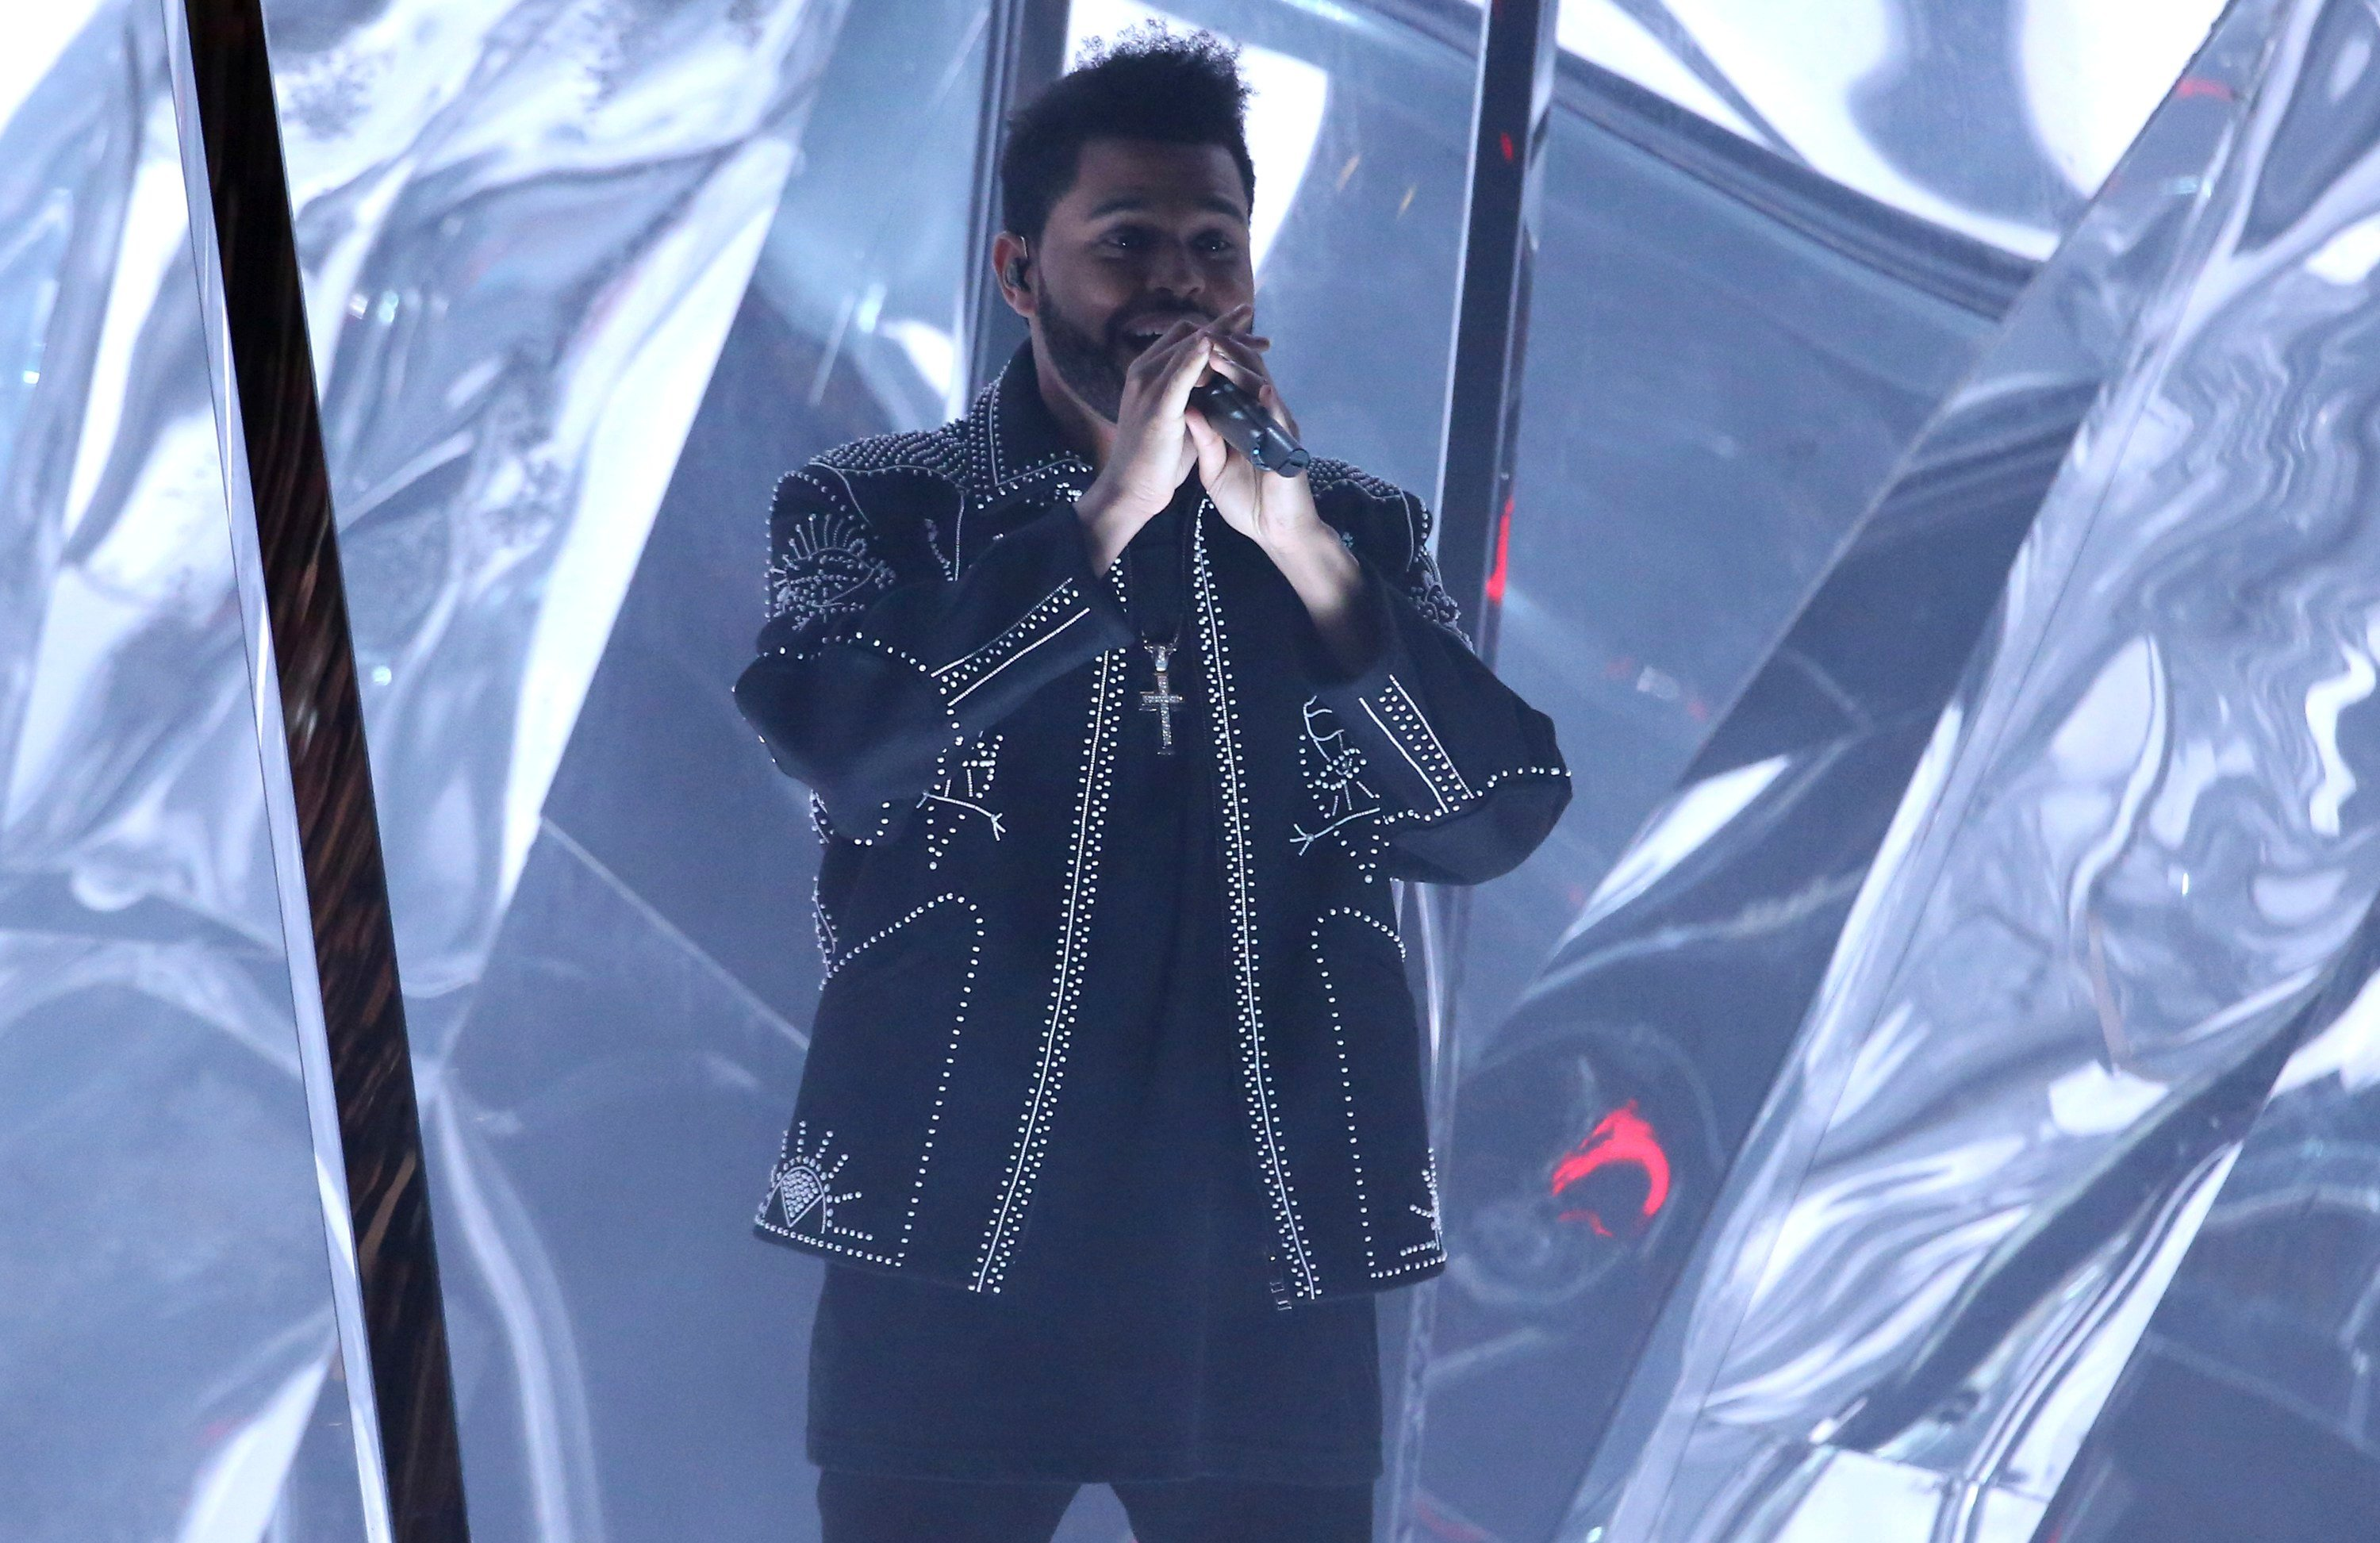 """The Weeknd performs """"Starboy"""" at the American Music Awards at the Microsoft Theater on Sunday, Nov. 20, 2016, in Los Angeles. (Photo by Matt Sayles/Invision/AP)"""